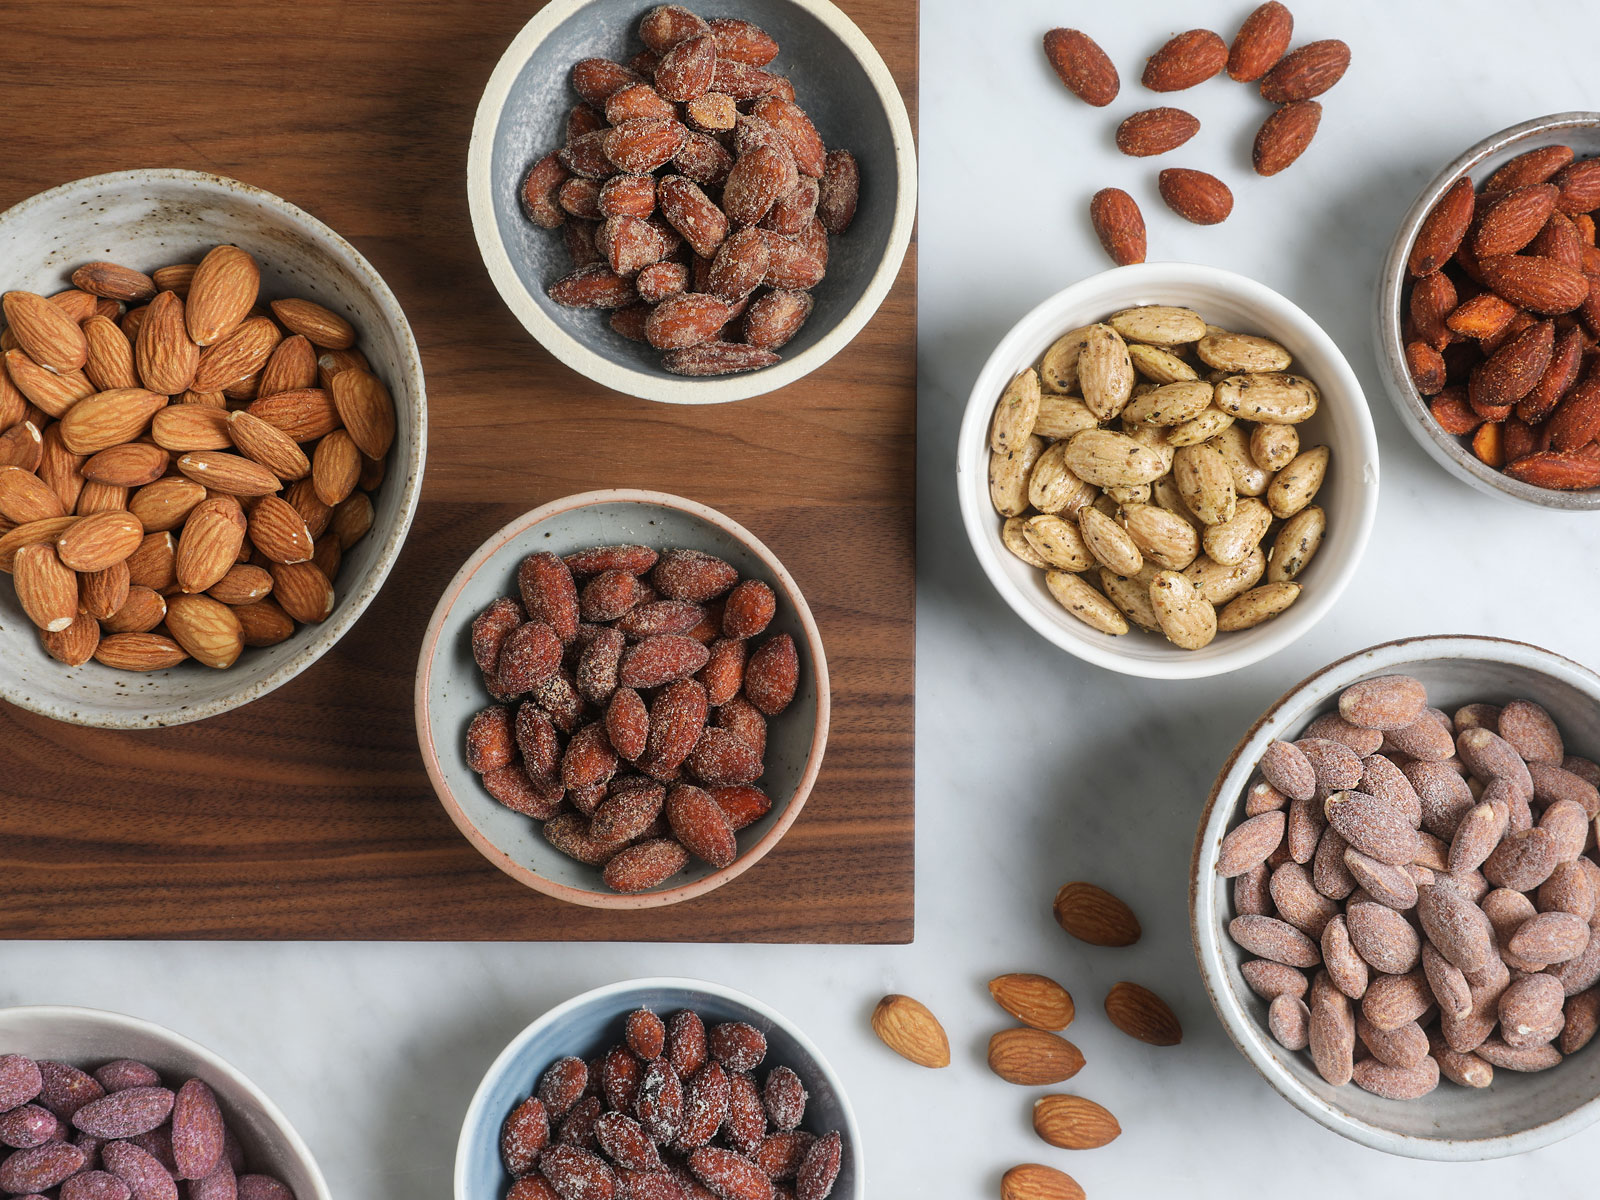 Every Blue Diamond Almond Flavor, Taste-Tested and Ranked